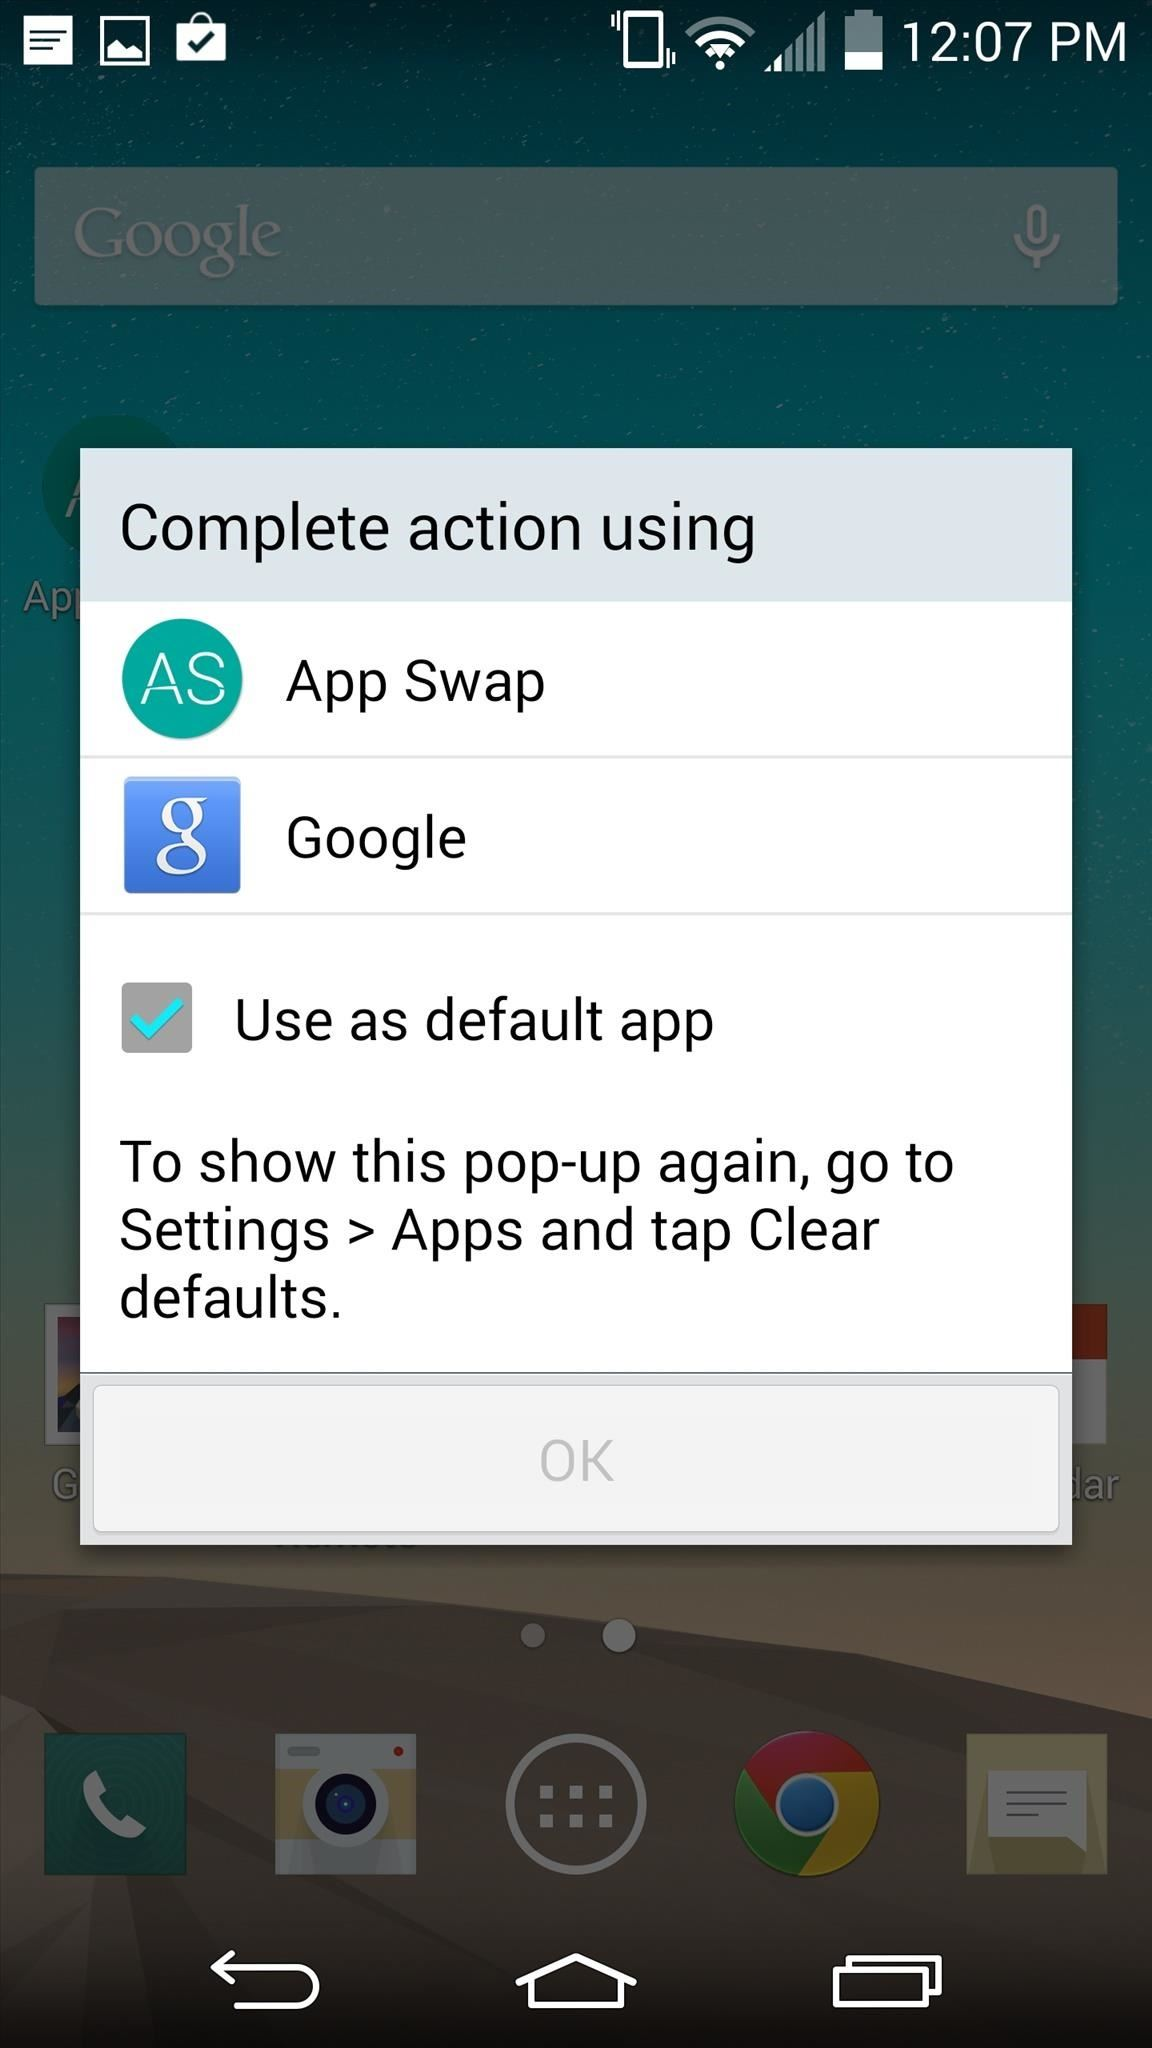 New App Switcher Gives Faster Access to Any App from Anywhere